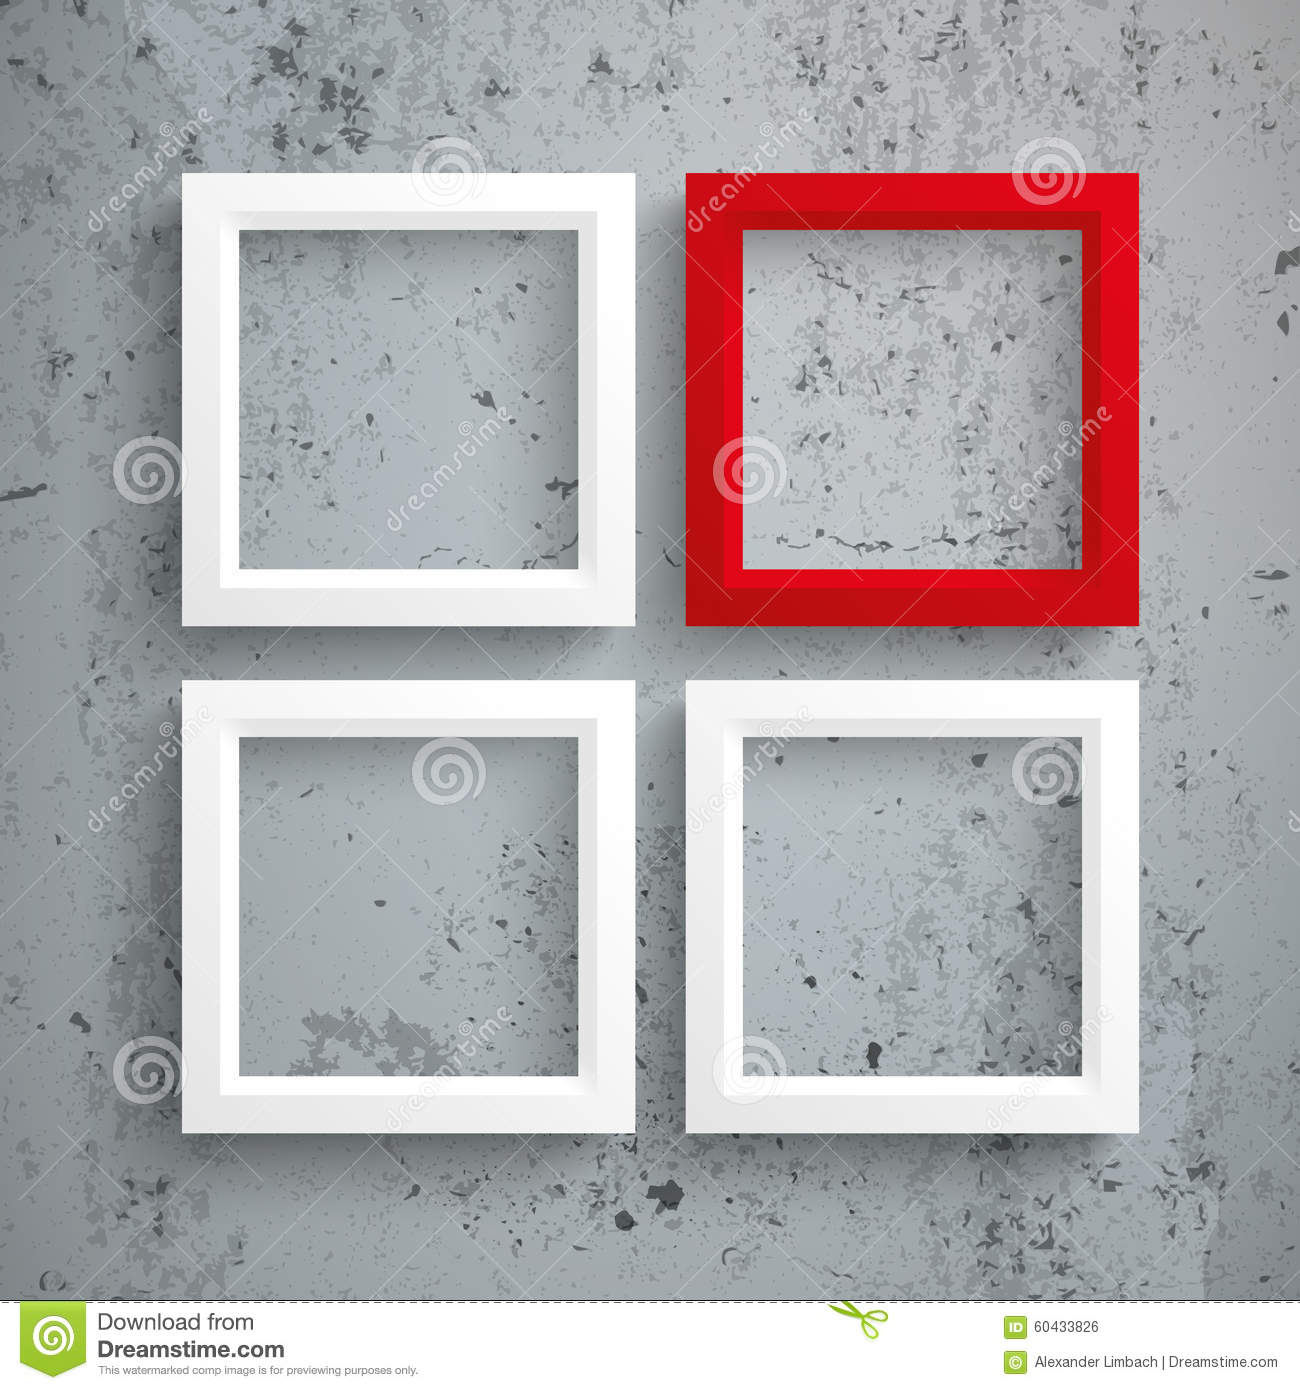 3 White 1 Red Frames Concrete Stock Vector - Illustration of ...